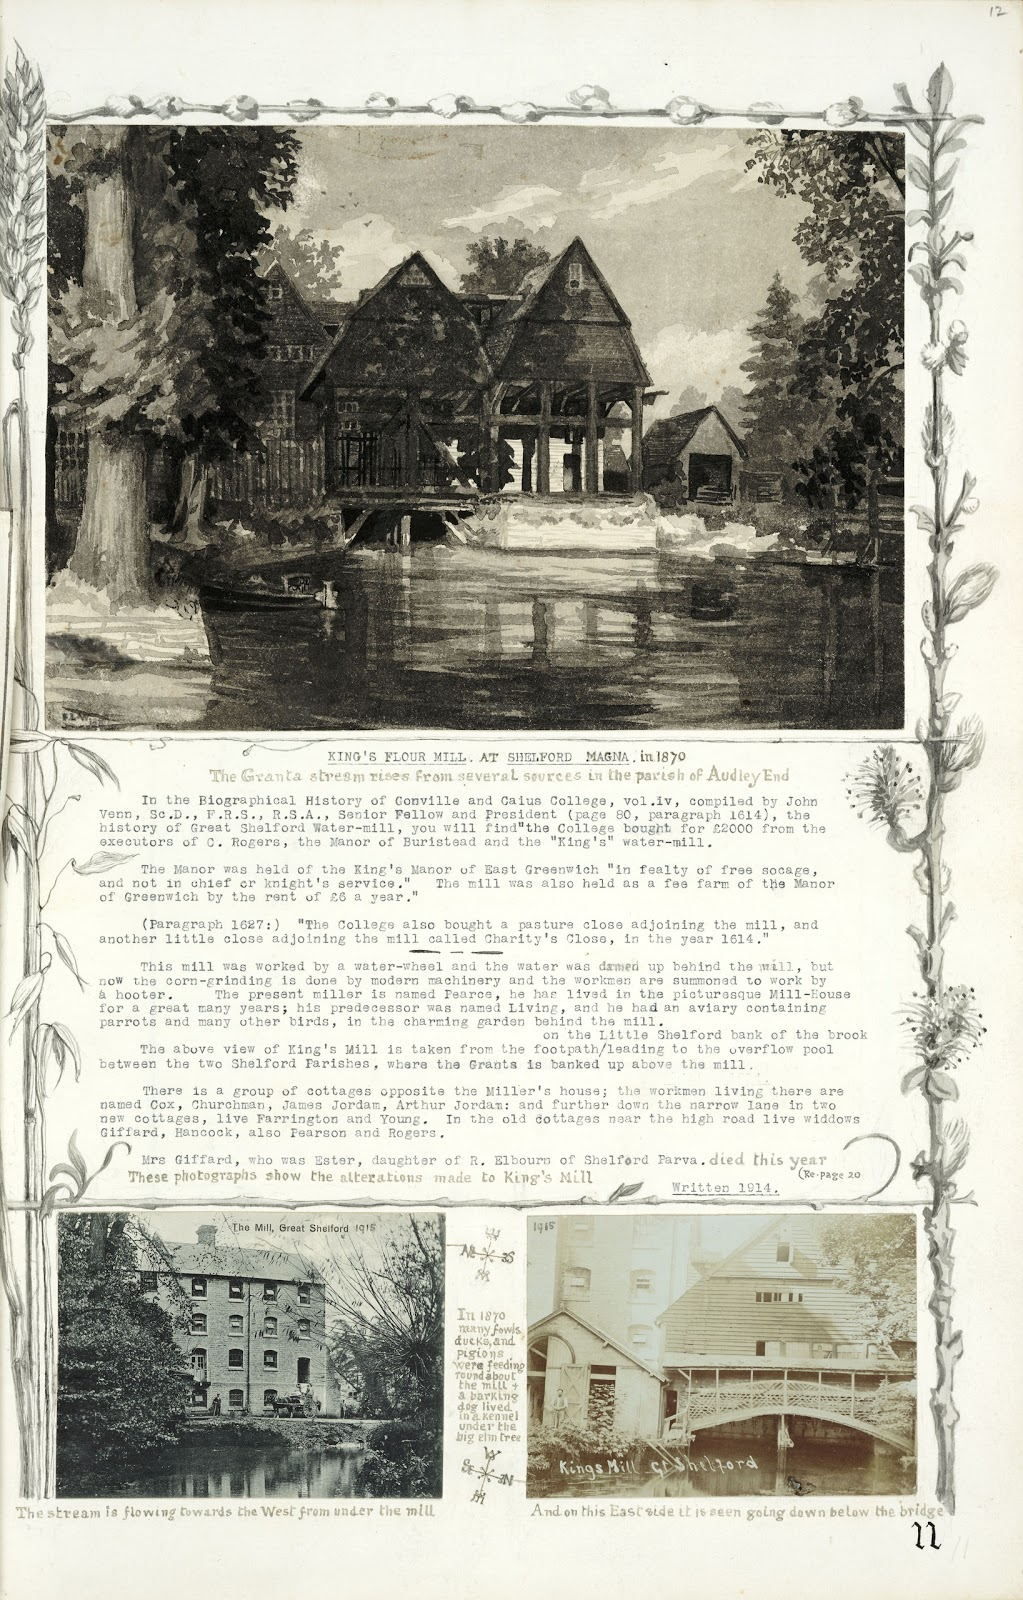 A Record of Shelford Parva by Fanny Wale P11 fo. 12, page 11: A black and white watercolour of Kings Flour Mill at Shelford Magna in 1871 is at the top of the page. Below this is a description of the mill and the miller written in 1914. Below this is a postcard of the mill in 1915 and a photograph of the mill in 1915. The page is bordered by a black and white watercolour design of foliage. [fo.11]